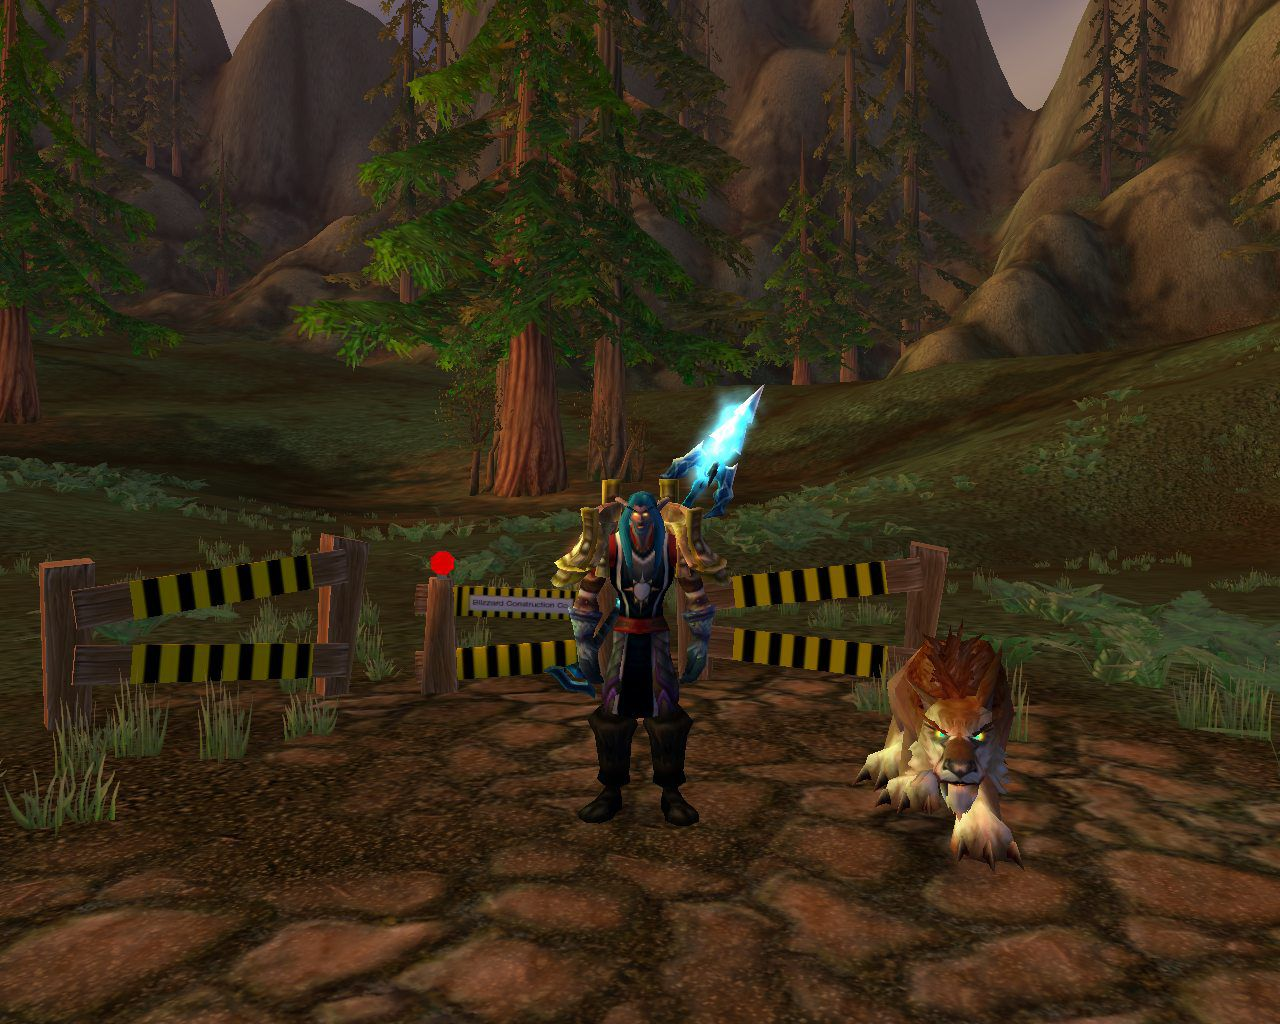 Hyjal under construction wow screenshot